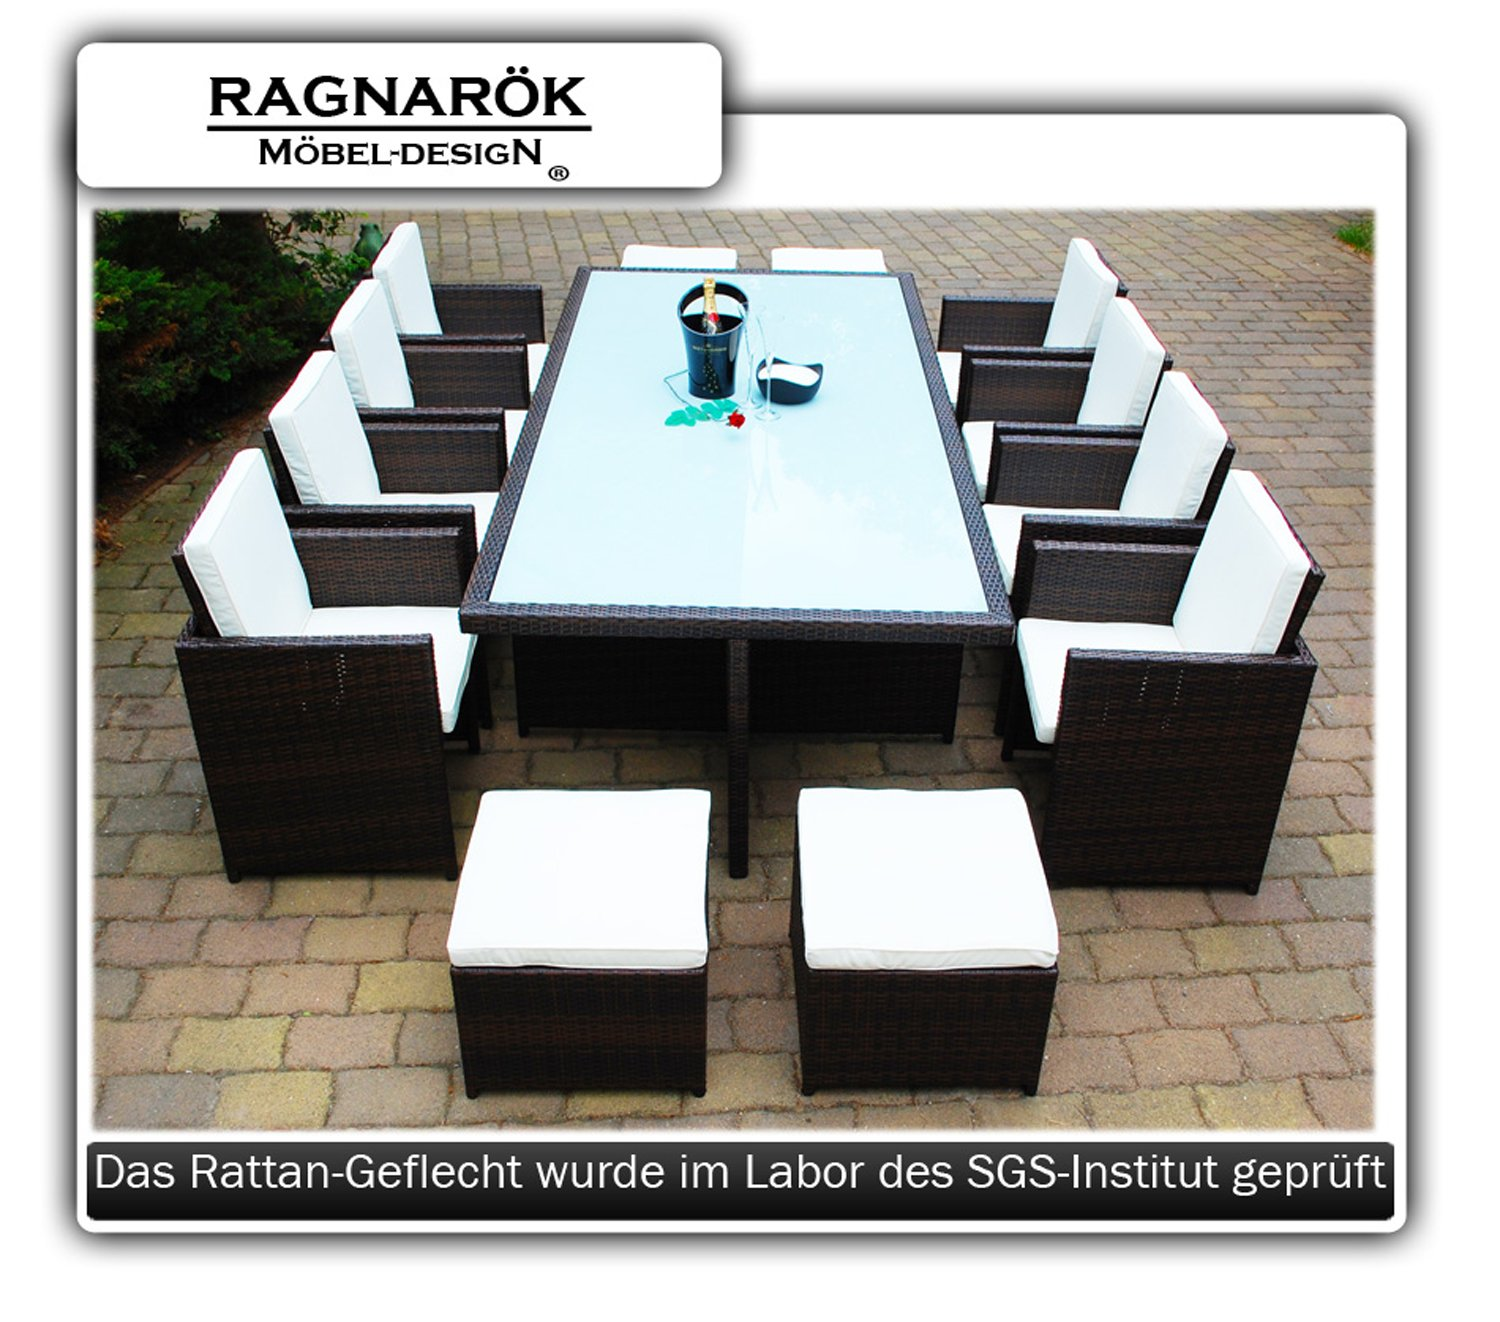 gartenm bel polyrattan essgruppe tisch mit 8 st hlen 4 hocker deutsche marke eignene. Black Bedroom Furniture Sets. Home Design Ideas